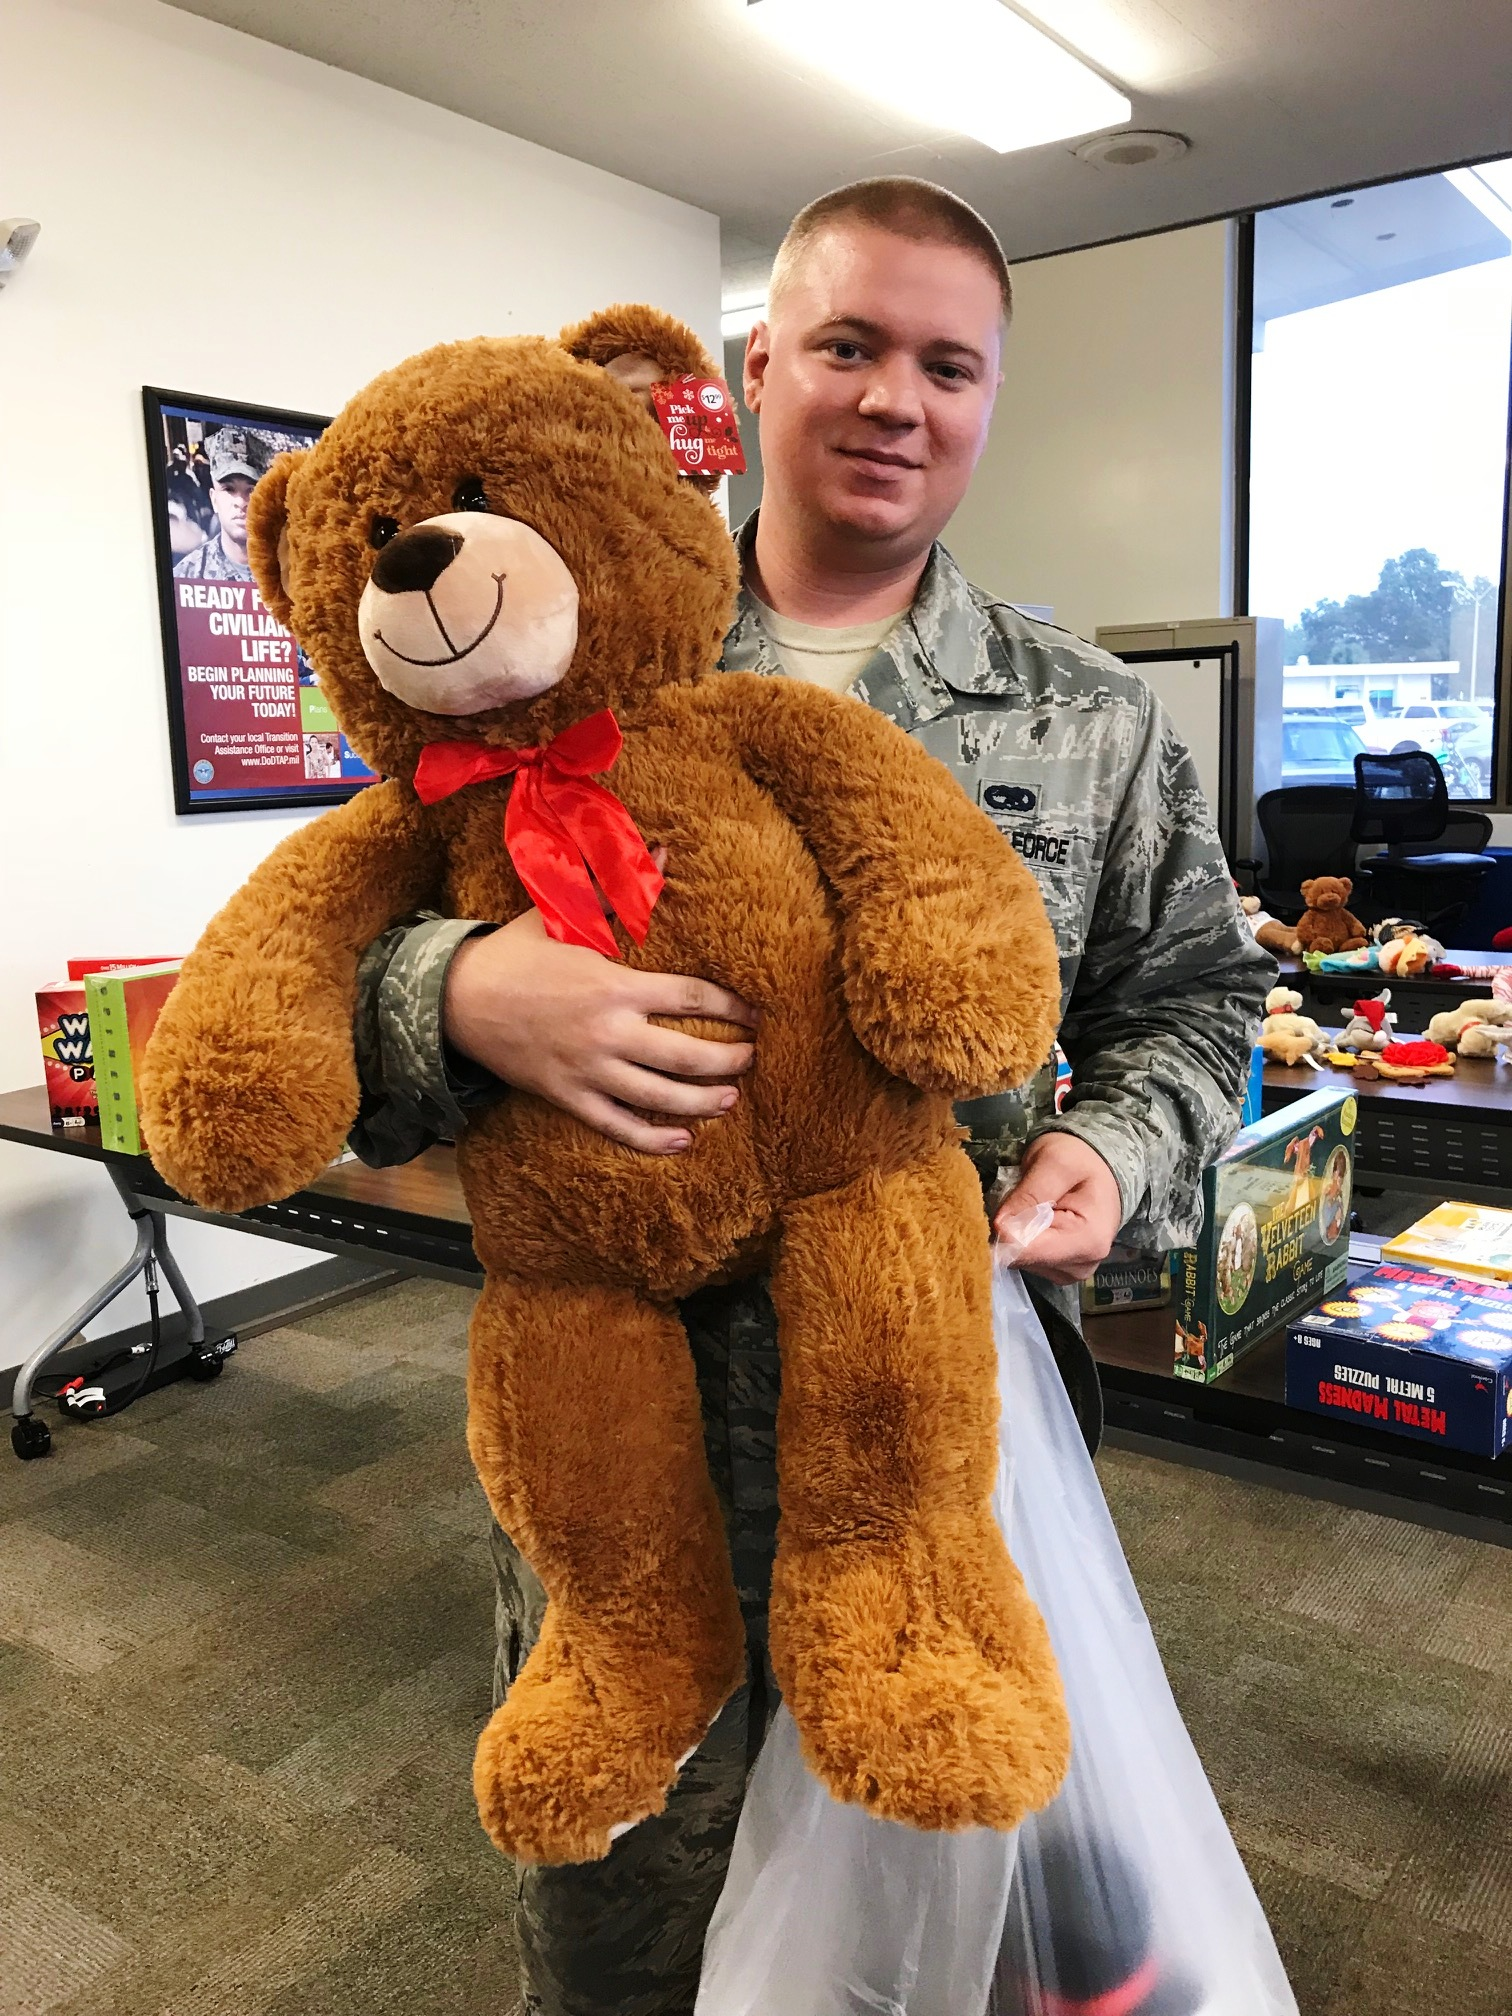 OTS 2017 - Teddy bear finds a home at MacDill AFB